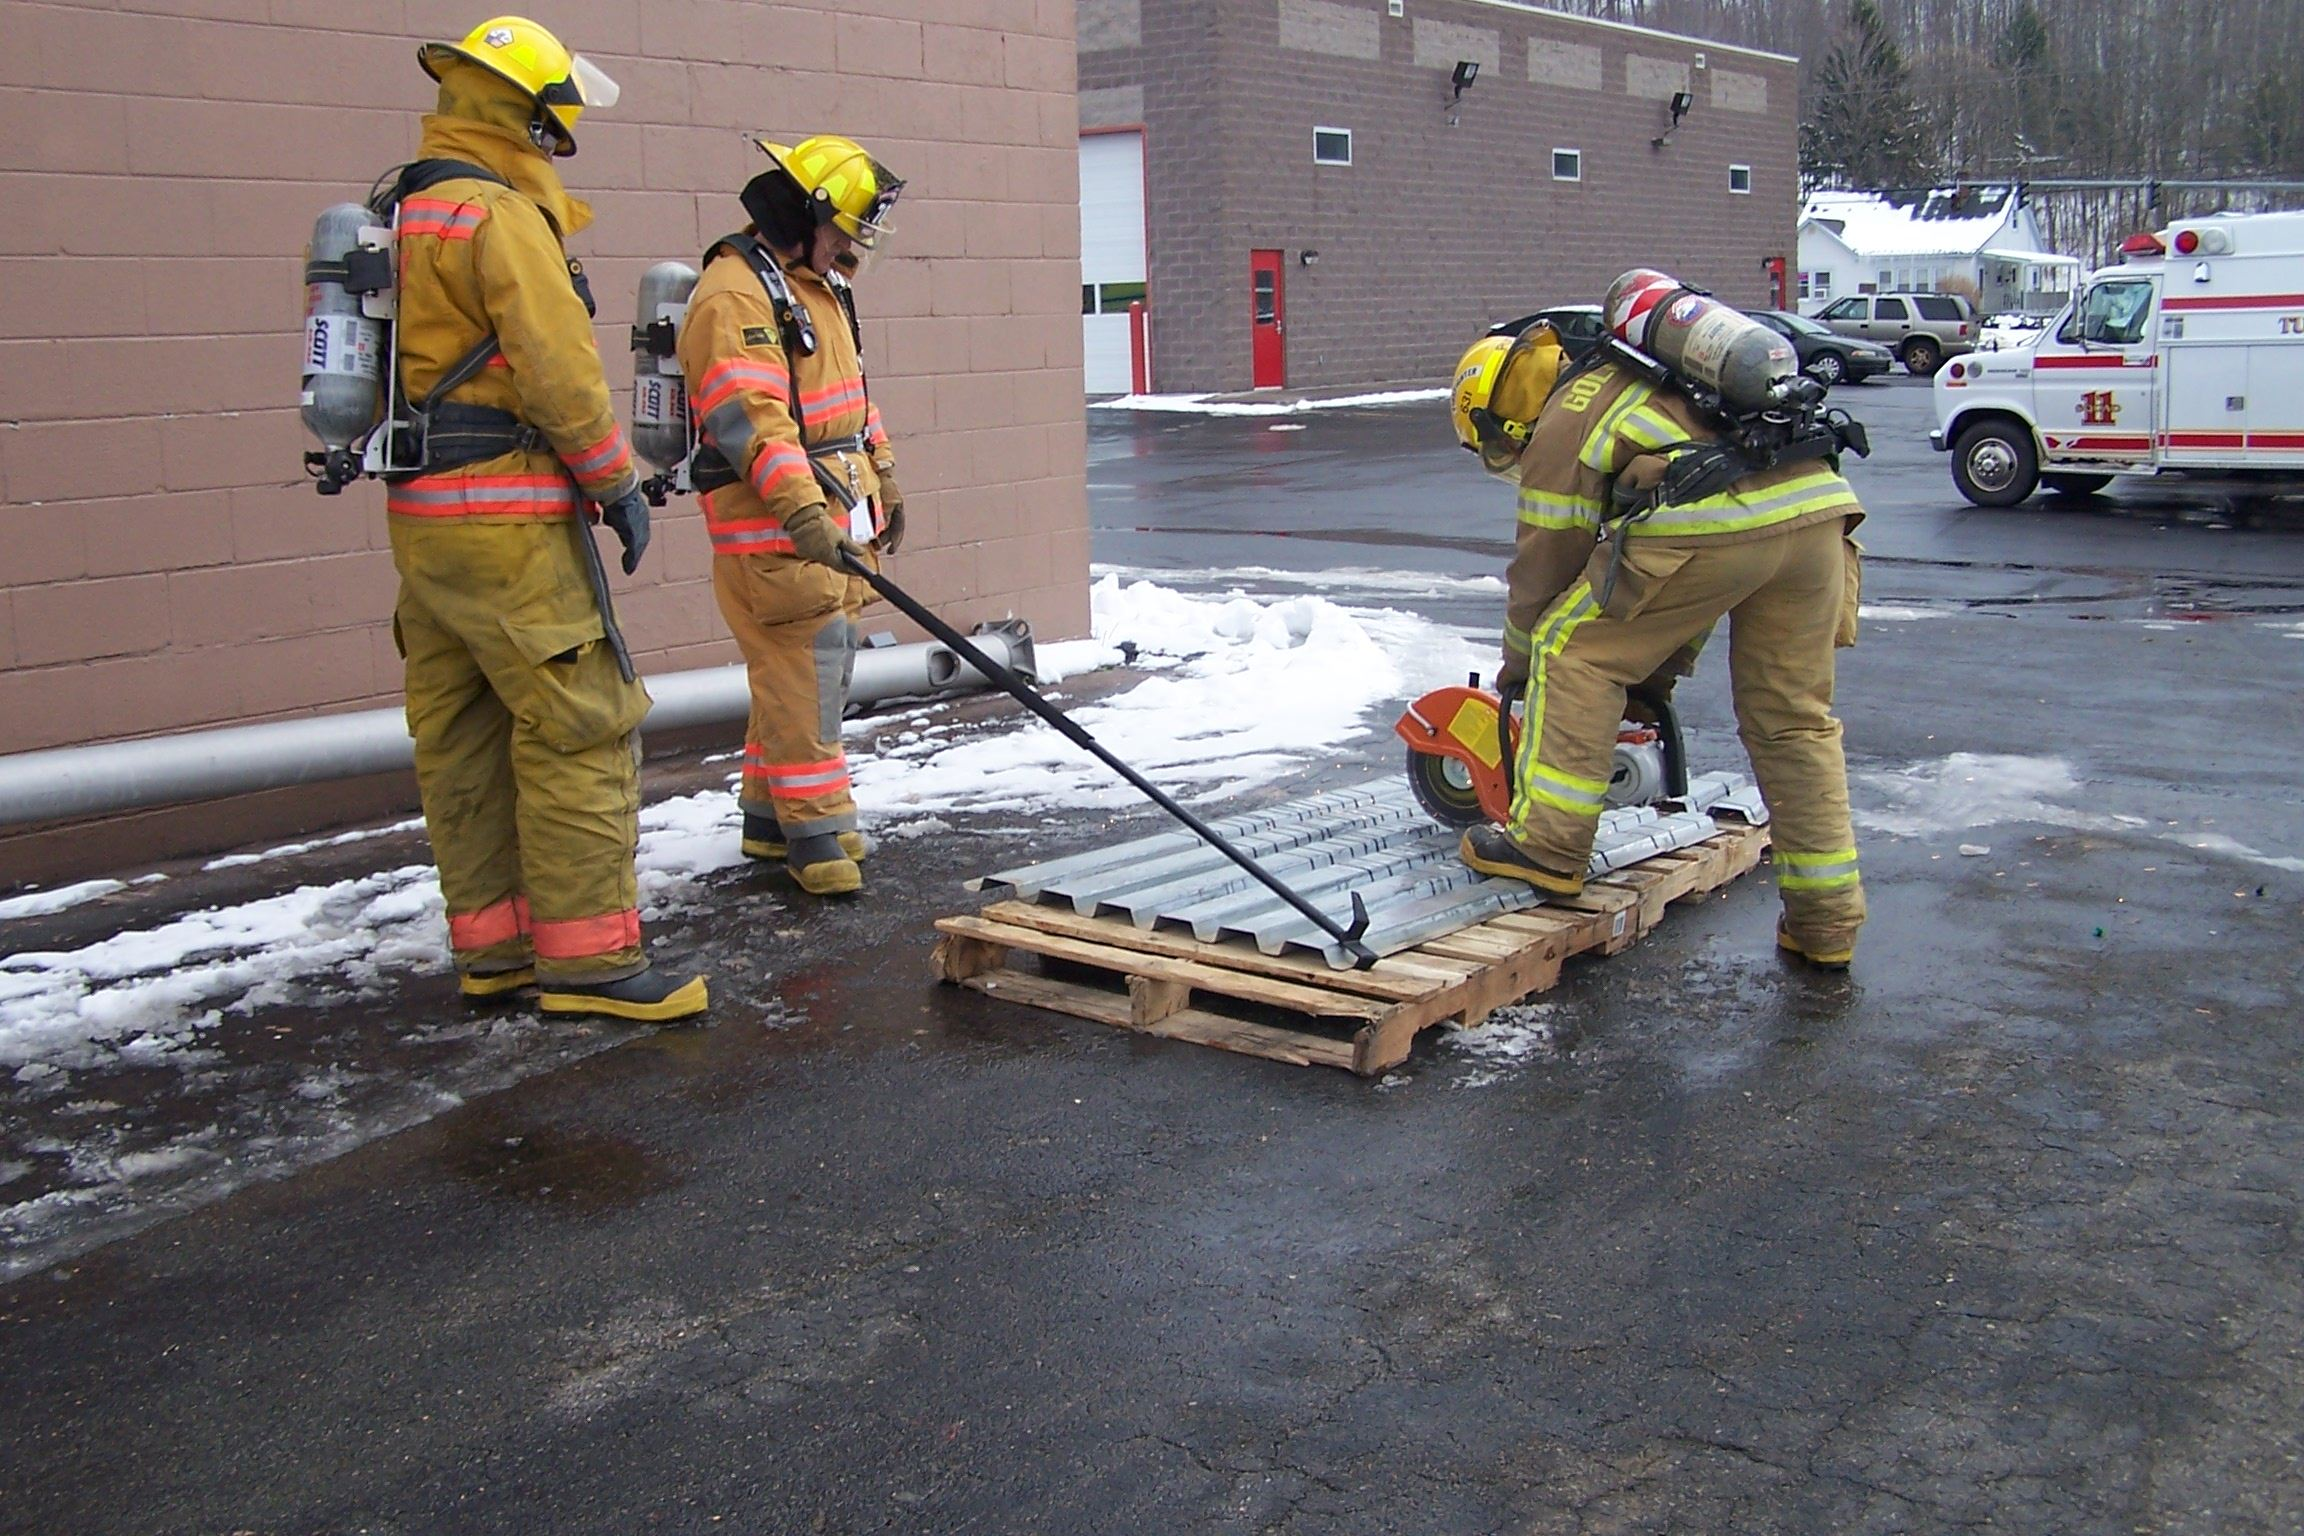 A firefighter practices cutting a metal roof with a powersaw while another firefighter holds the roof piece down on top of a pallet. A third firefighter stands by and observes.